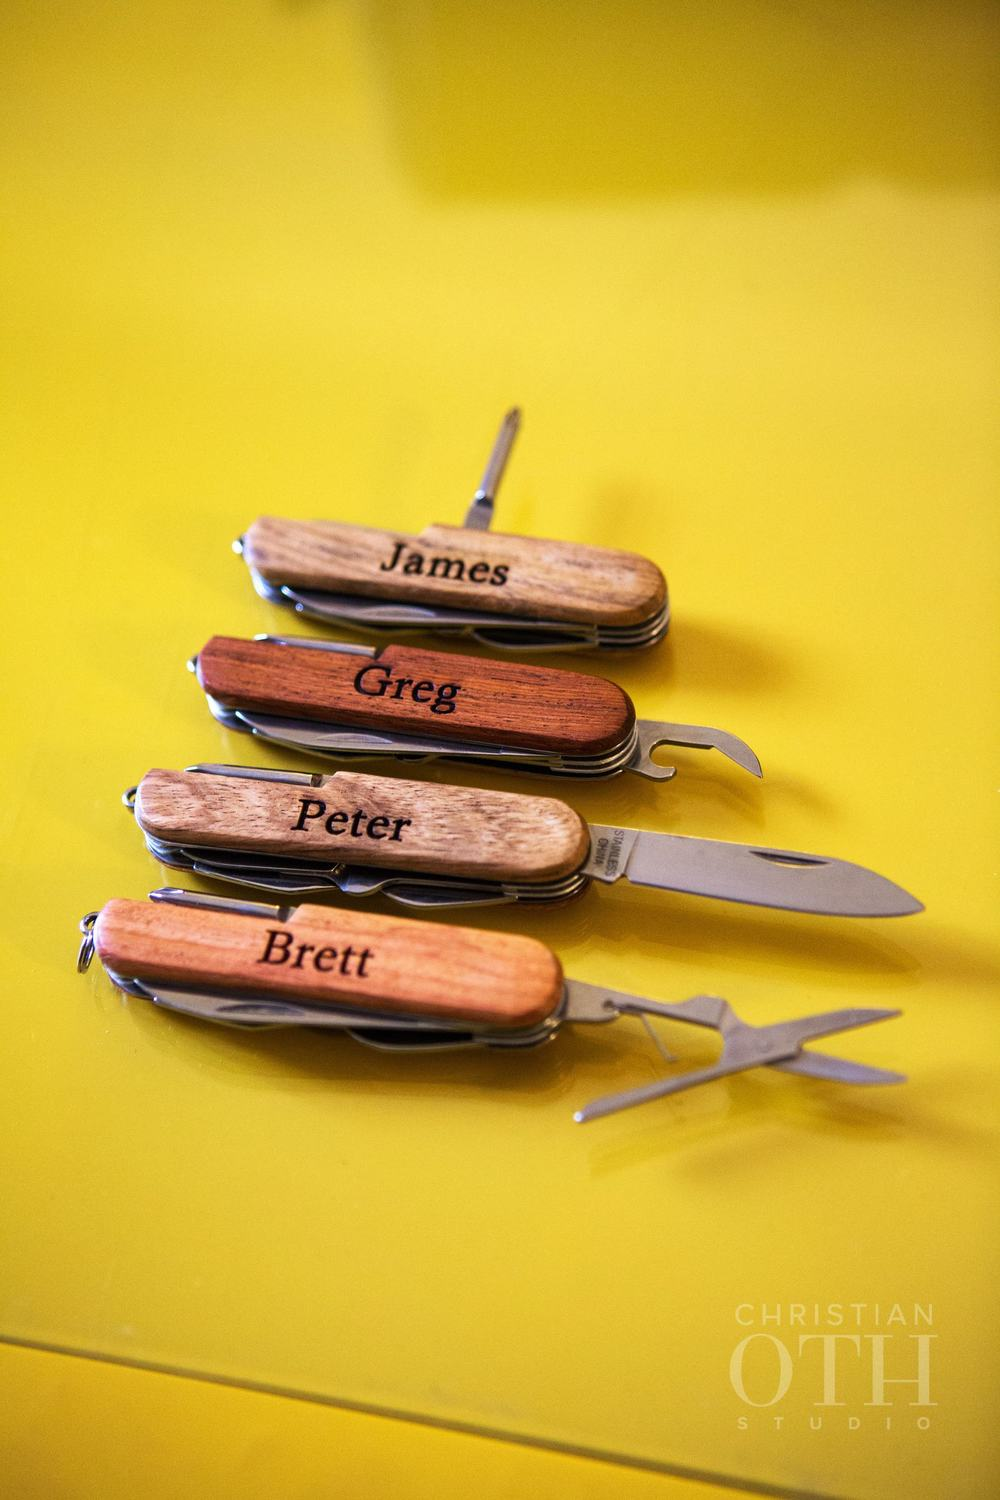 PERSONALIZED WOODEN SWISS ARMY KNIVES